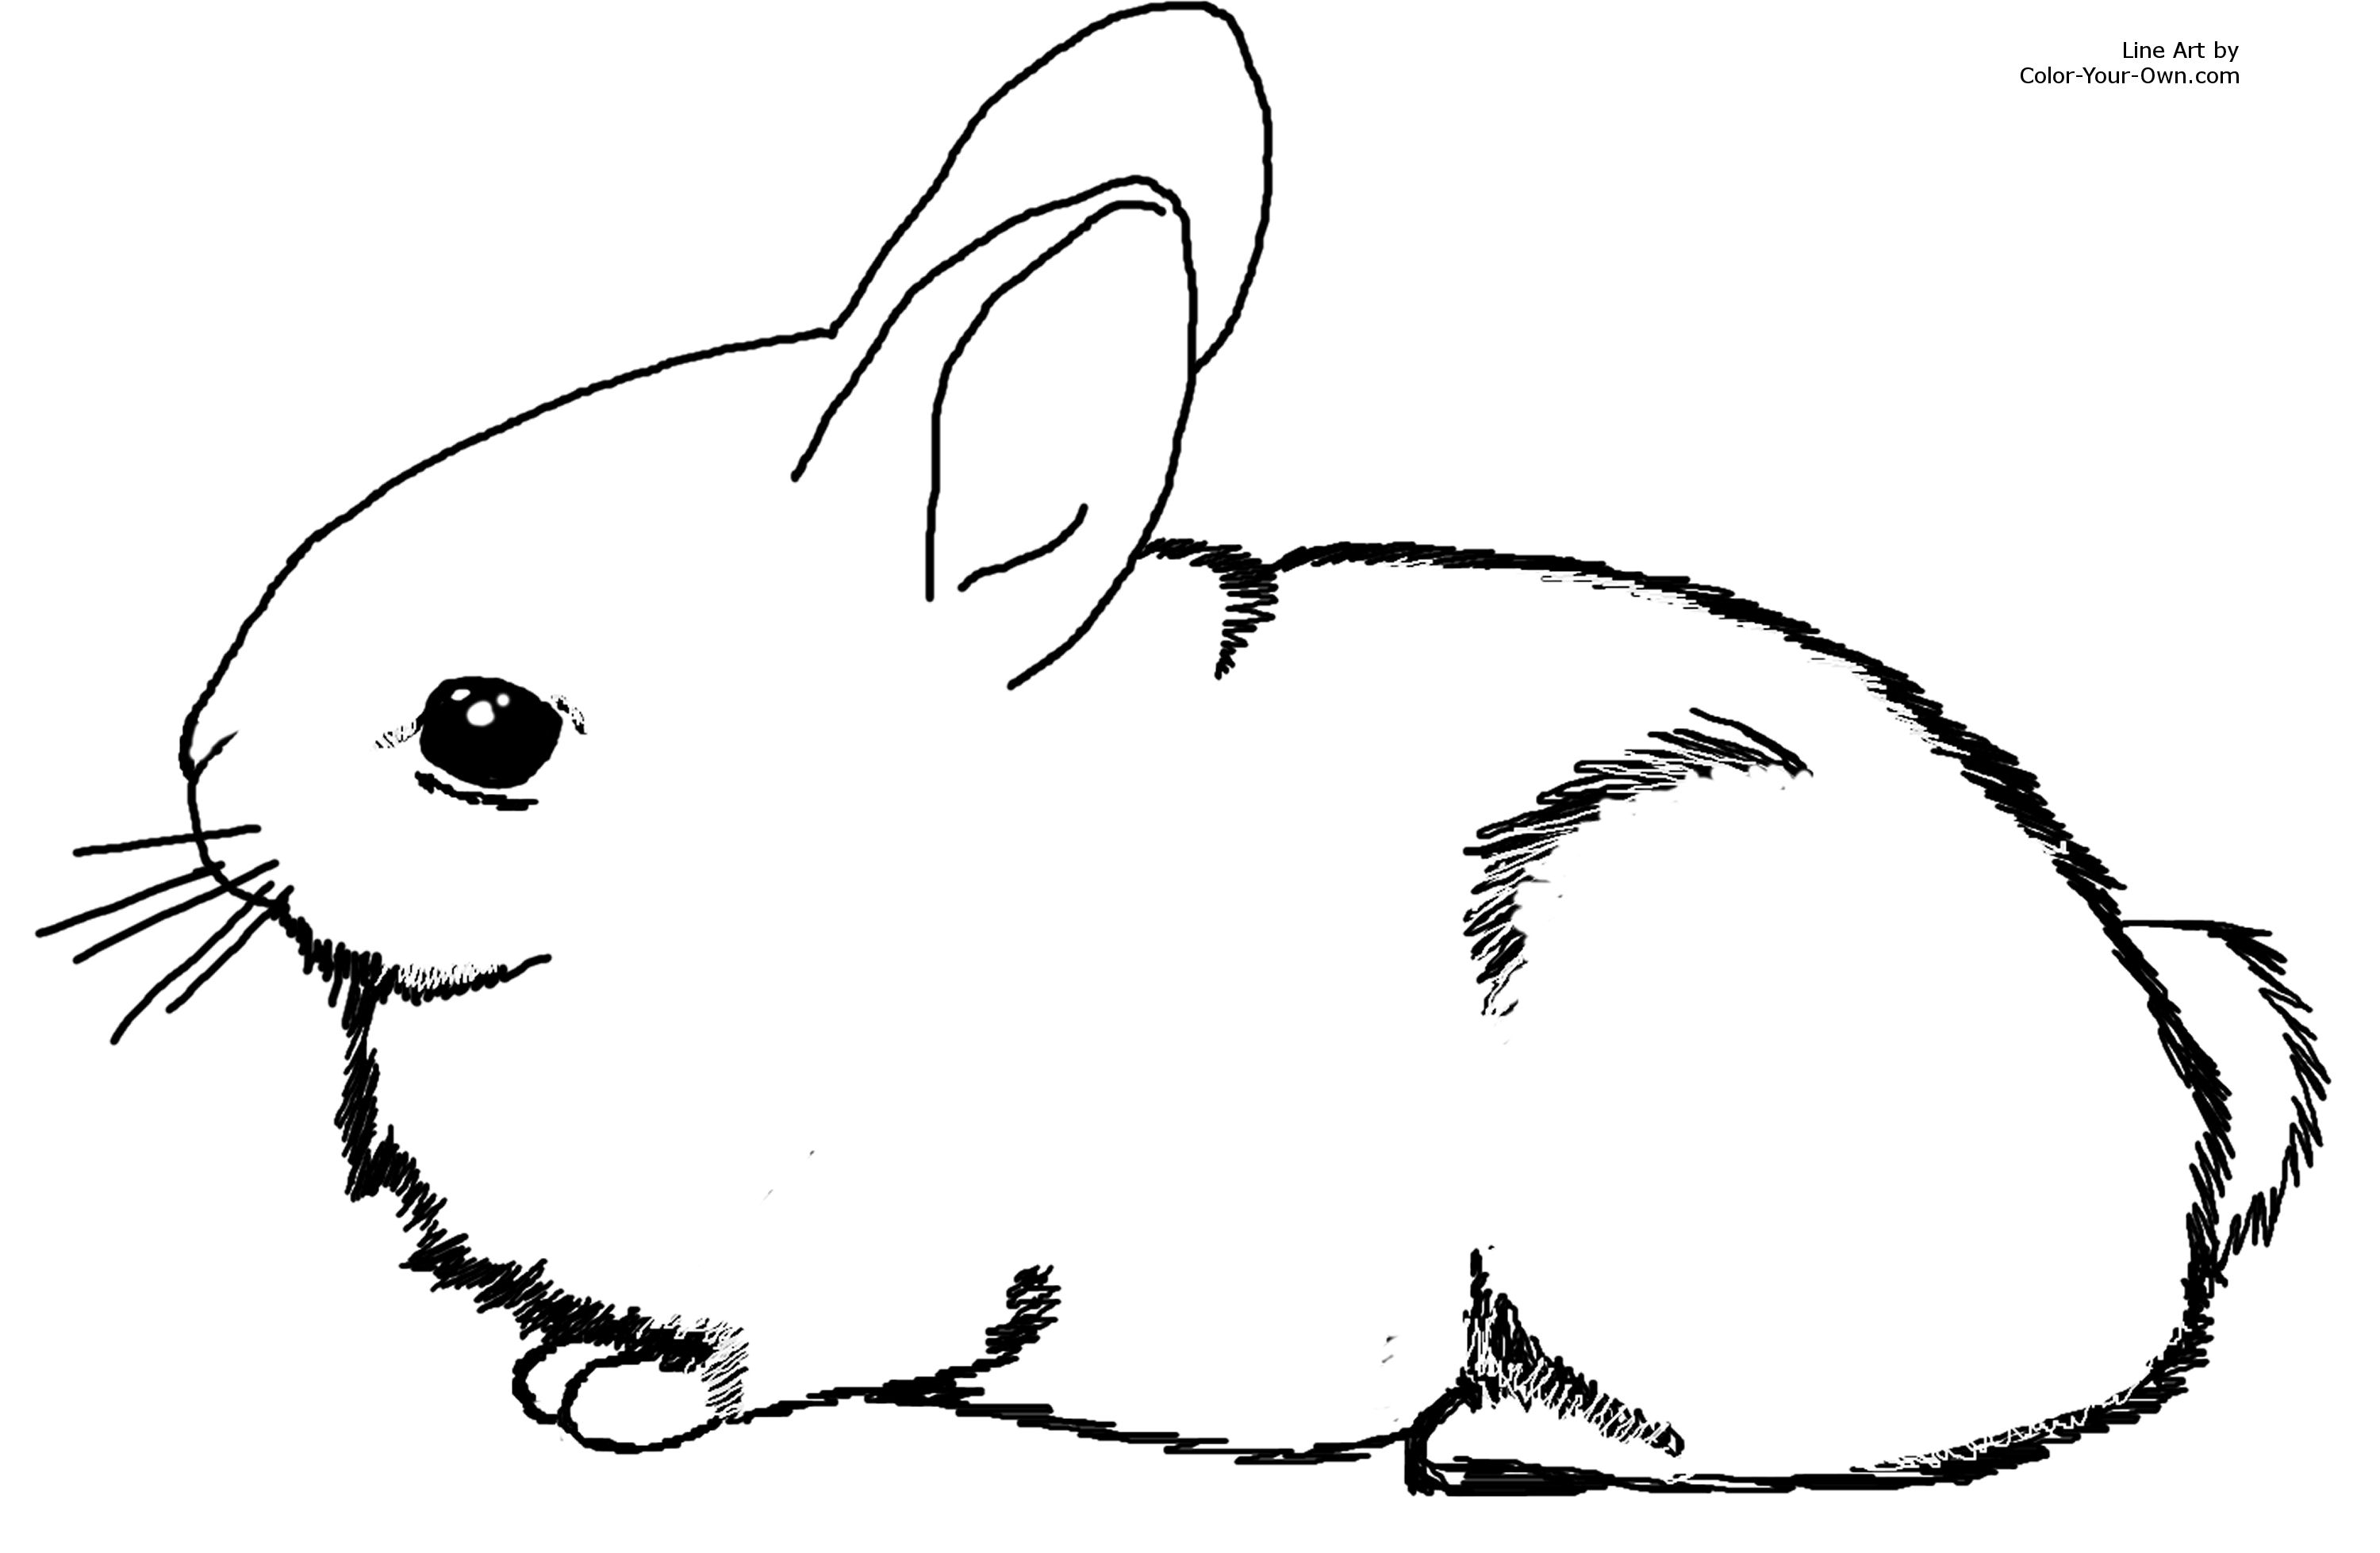 Baby Bunny Coloring Pages - Adorable Baby Cottontail Rabbit Bunny Coloring Page